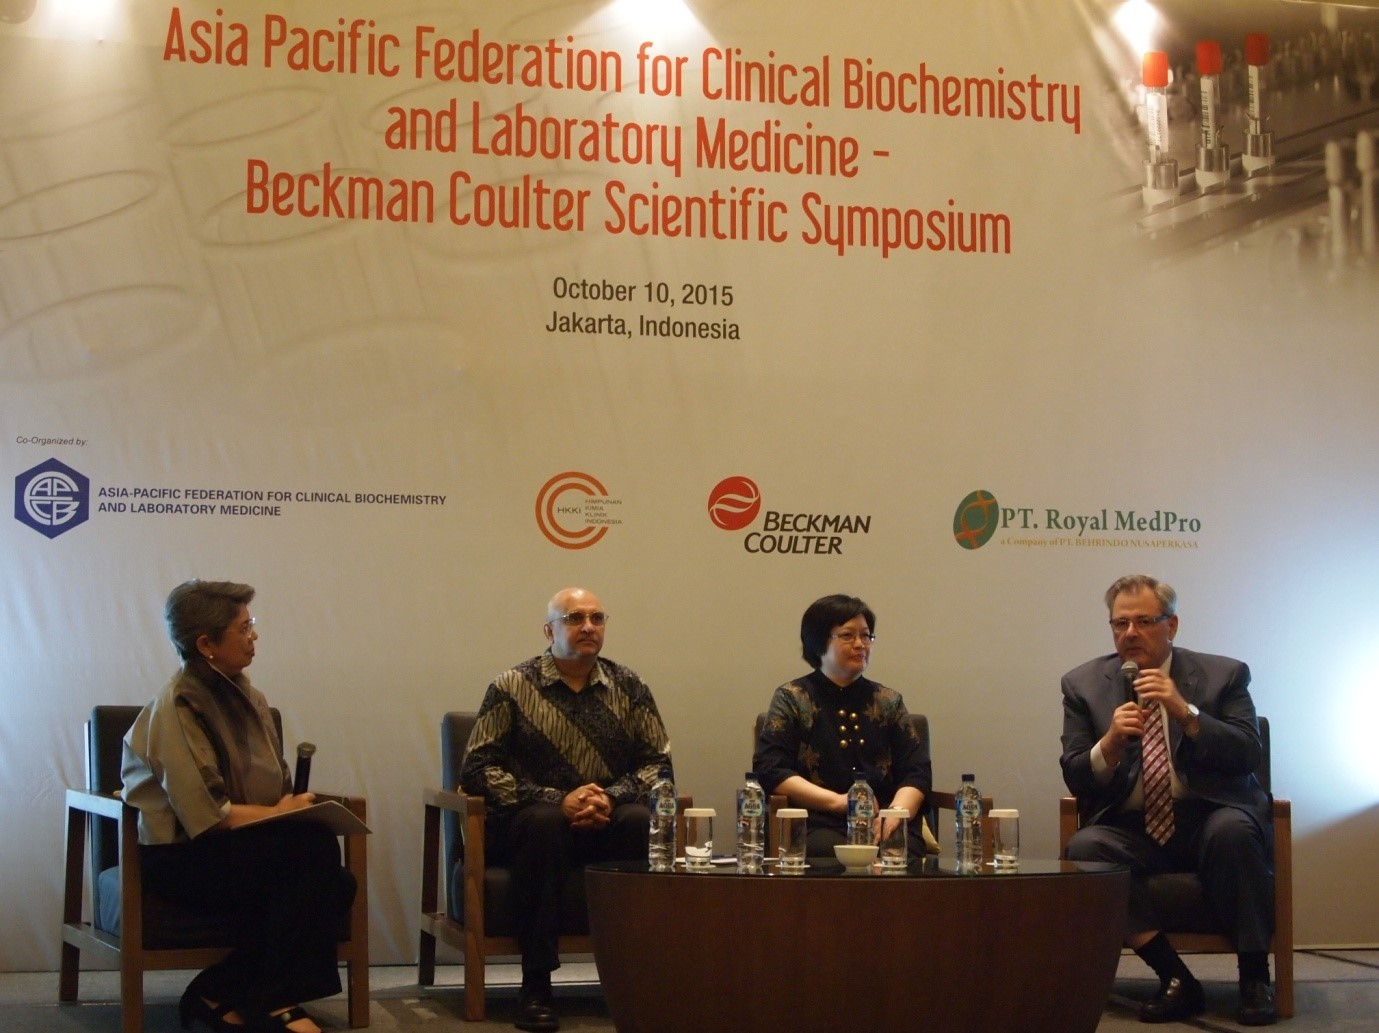 IACC co-hosted APFCB Beckman Coulter Scientific Symposium